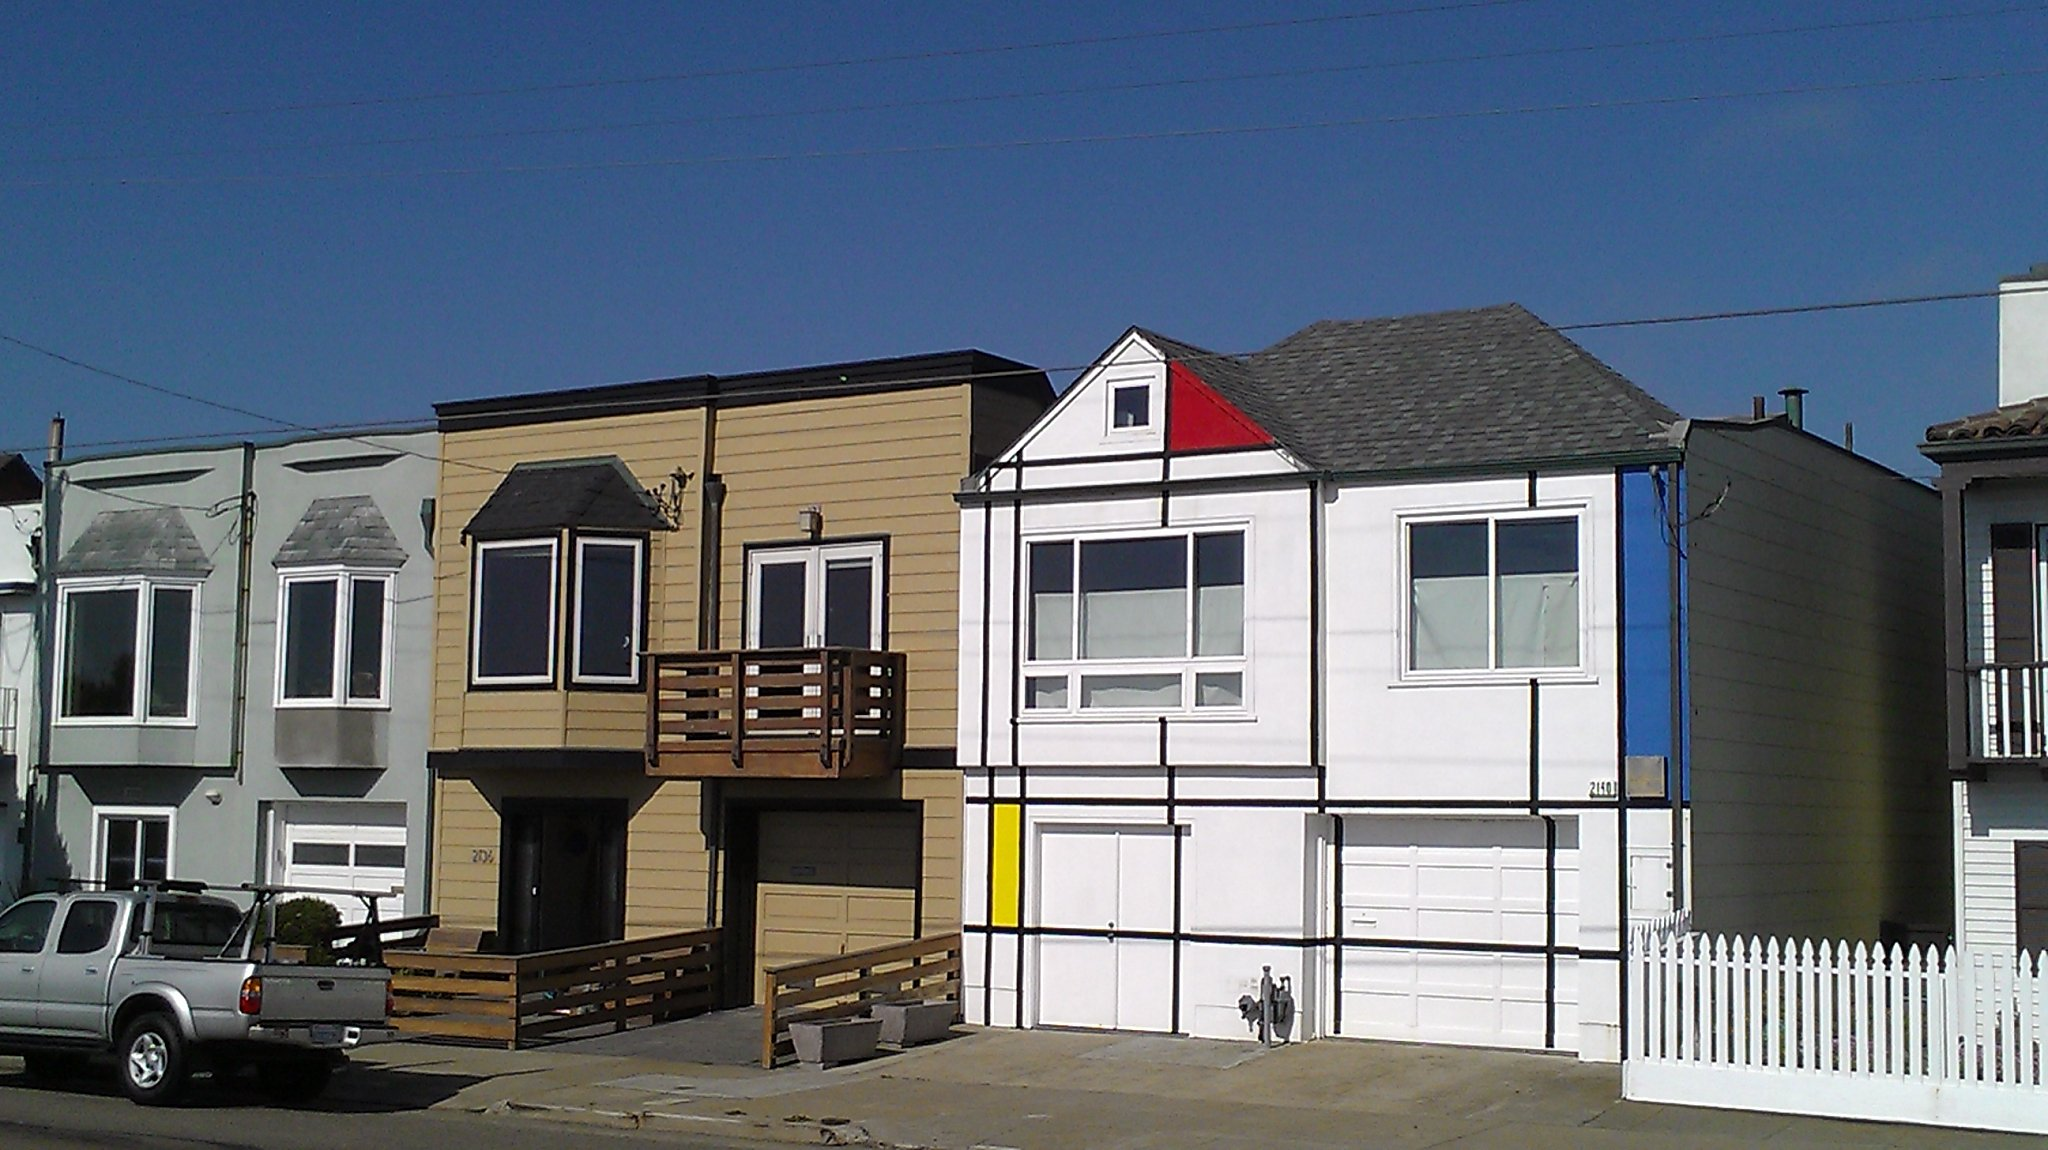 Say goodbye to another quirky S.F. landmark - the Mondrian House at Ocean Beach